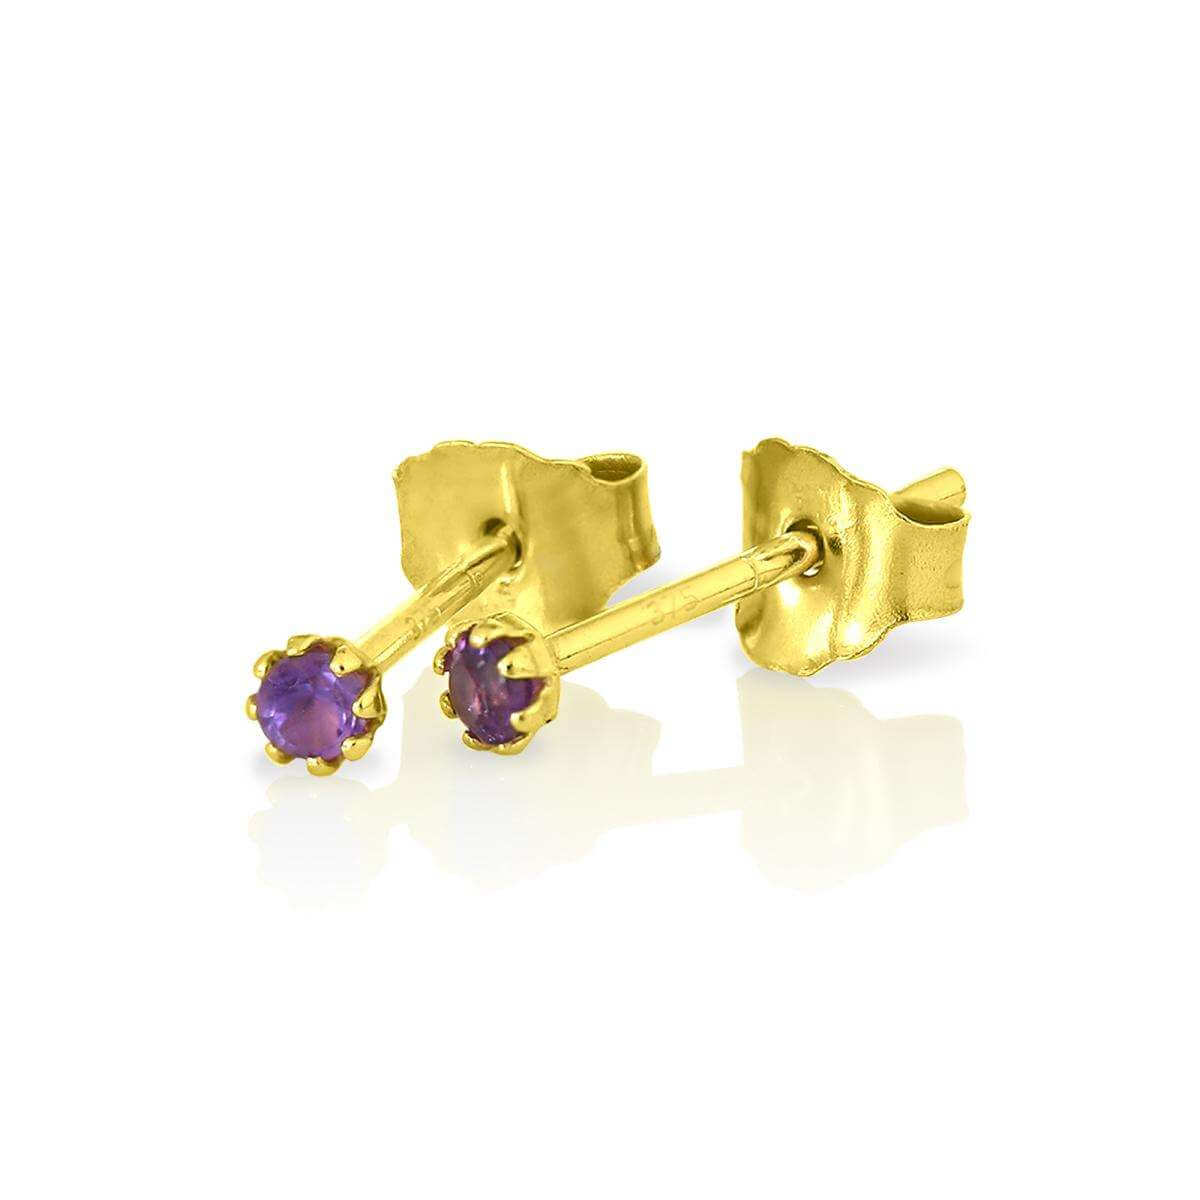 9ct Gold & Amethyst Gemstone 2mm Round Stud Earrings